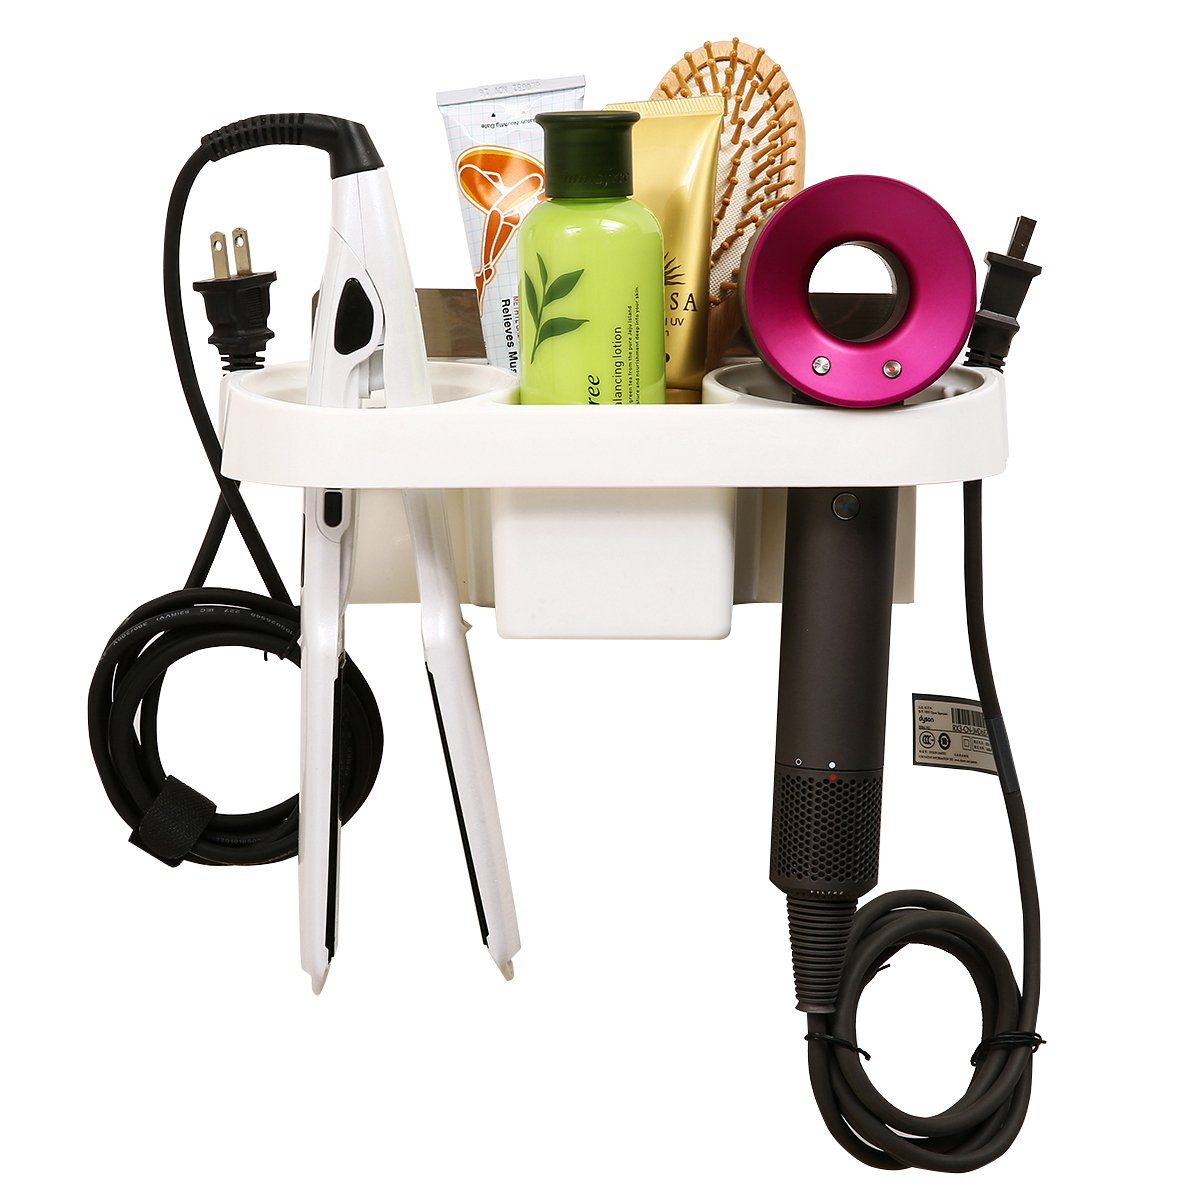 GEMITTO Double Hole Hair Dryer Organizer Durable Hair Dryer Holder No Drilling Wall Mounted for Bathroom Hotel